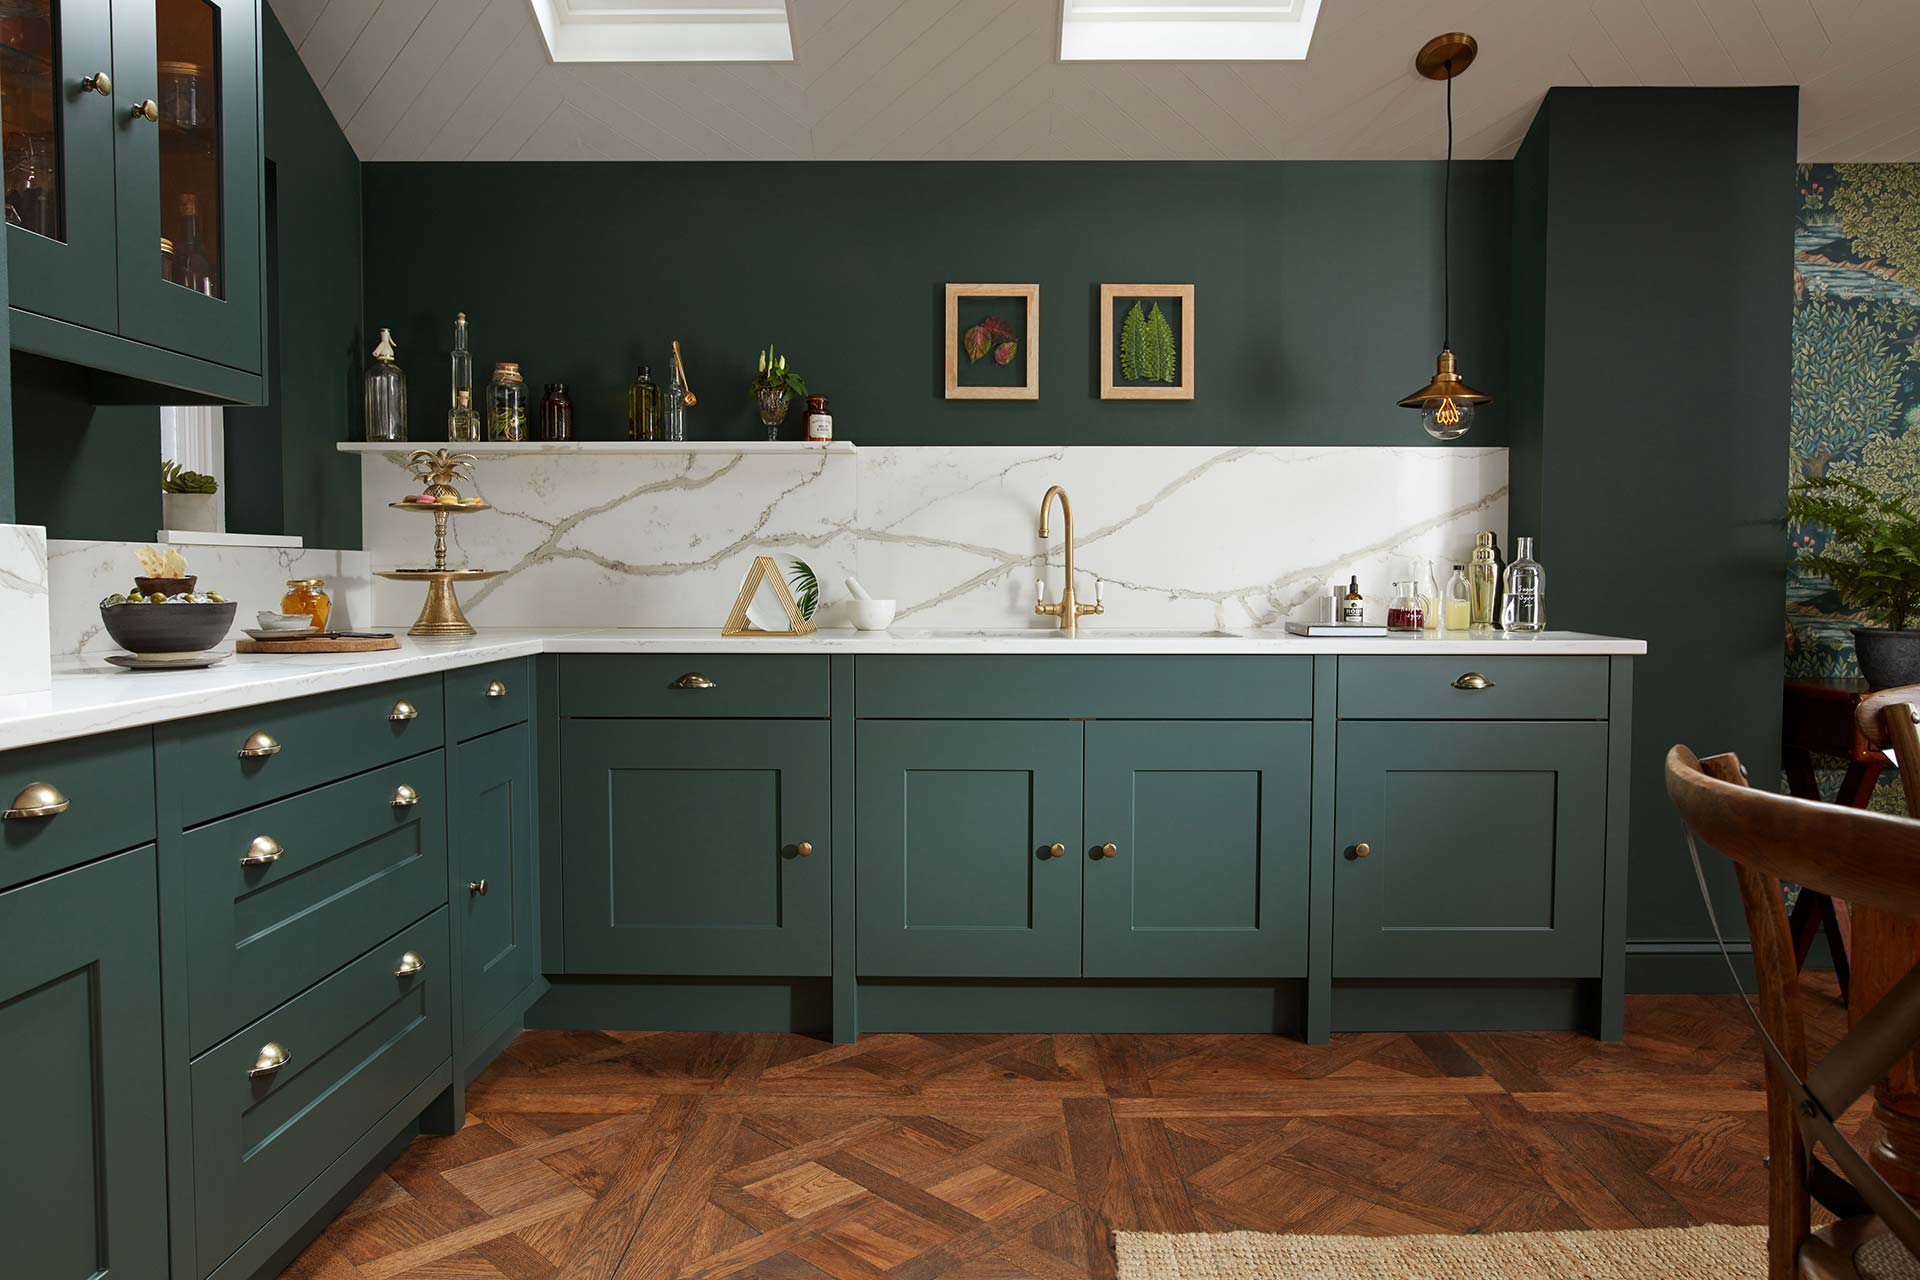 Green shaker kitchen marbled quartz worktop & splashback